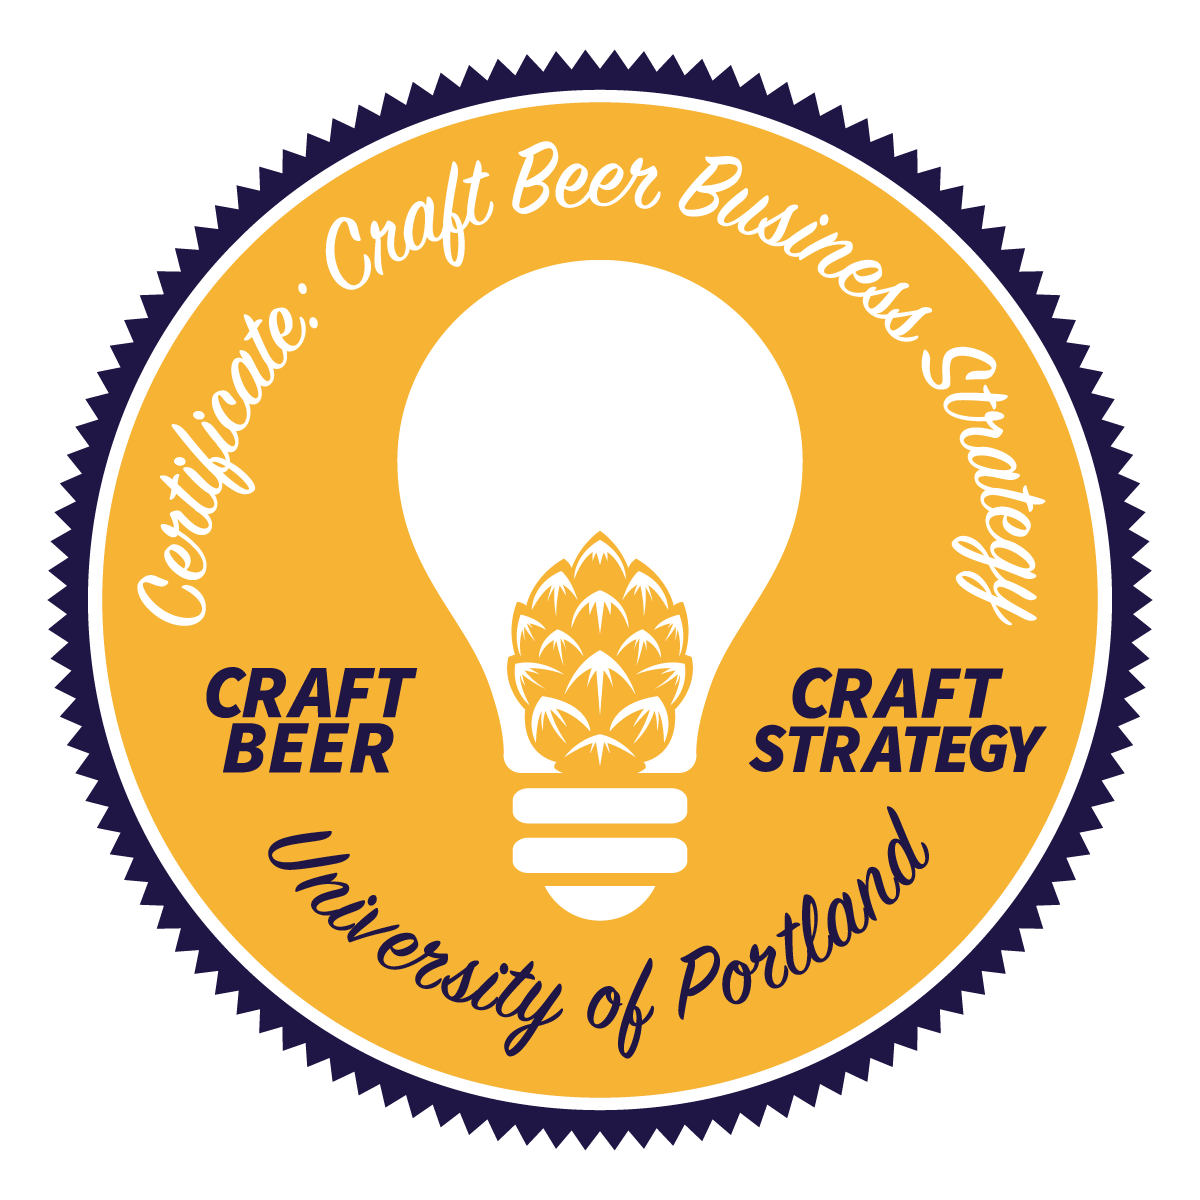 craft beer business completed course certificate seal